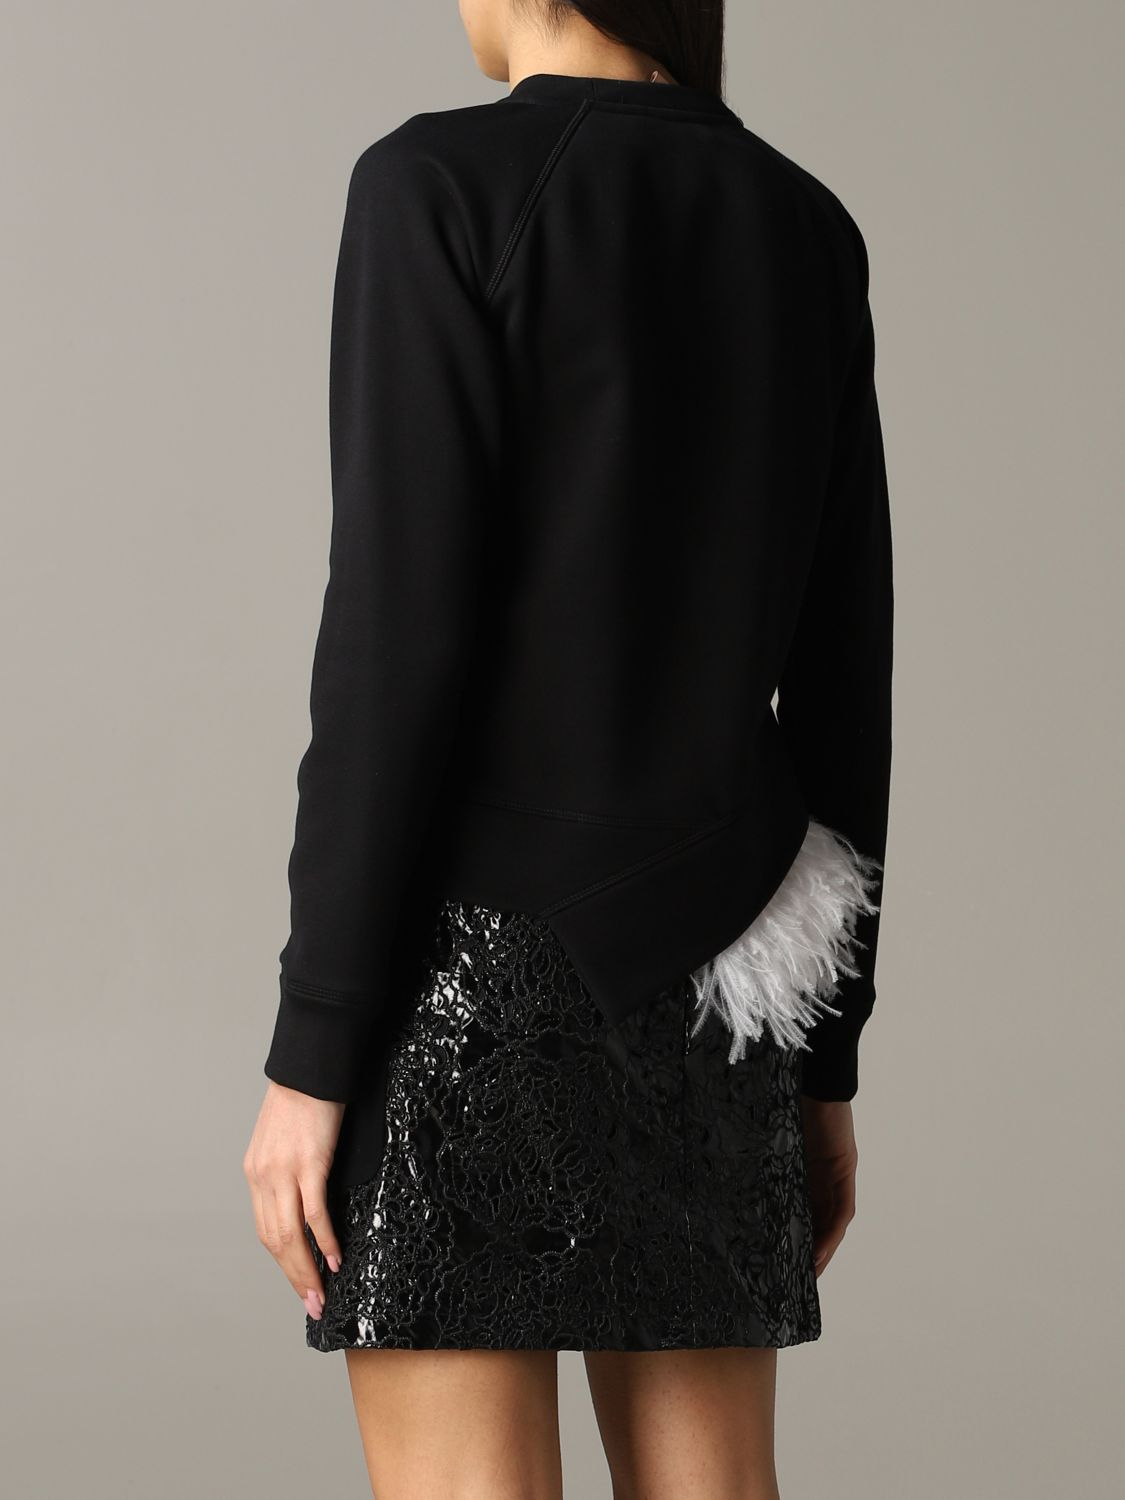 N ° 21 sweatshirt with feather inserts black 3